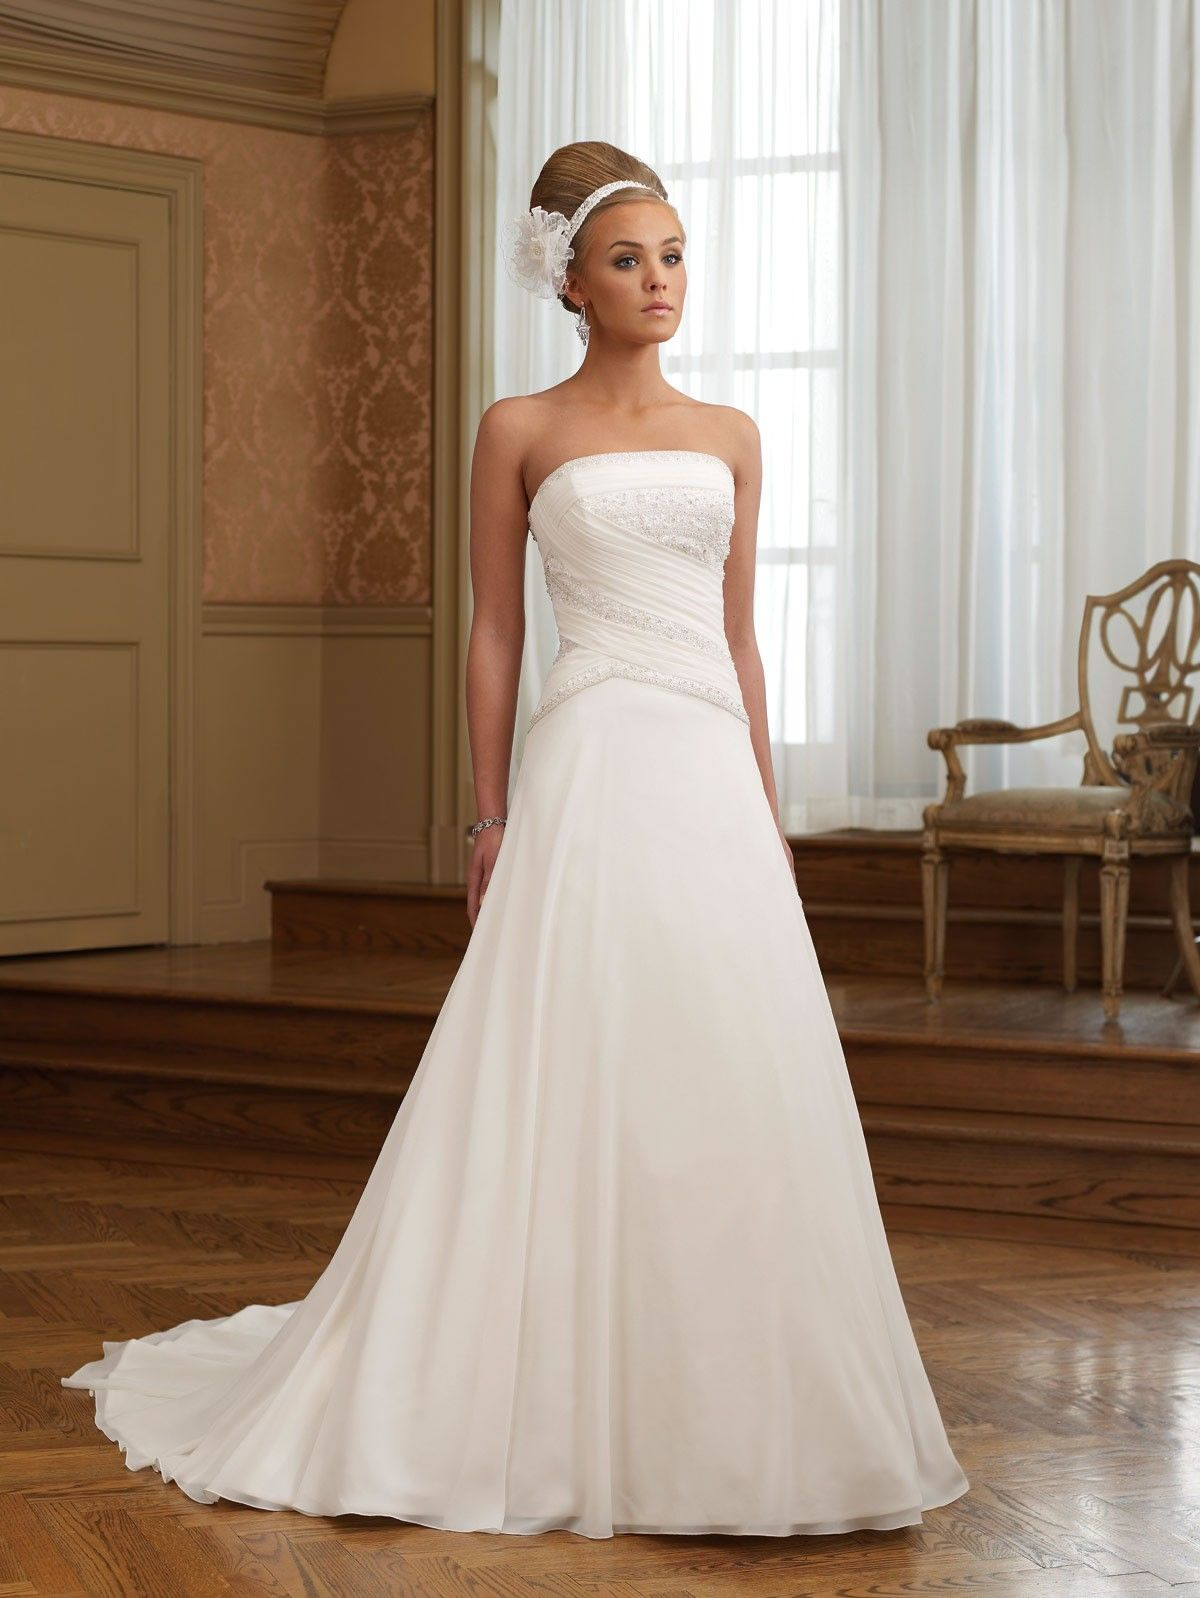 Chiffon Strapless Ruching Bodice A-line Wedding Dress | A-line ...